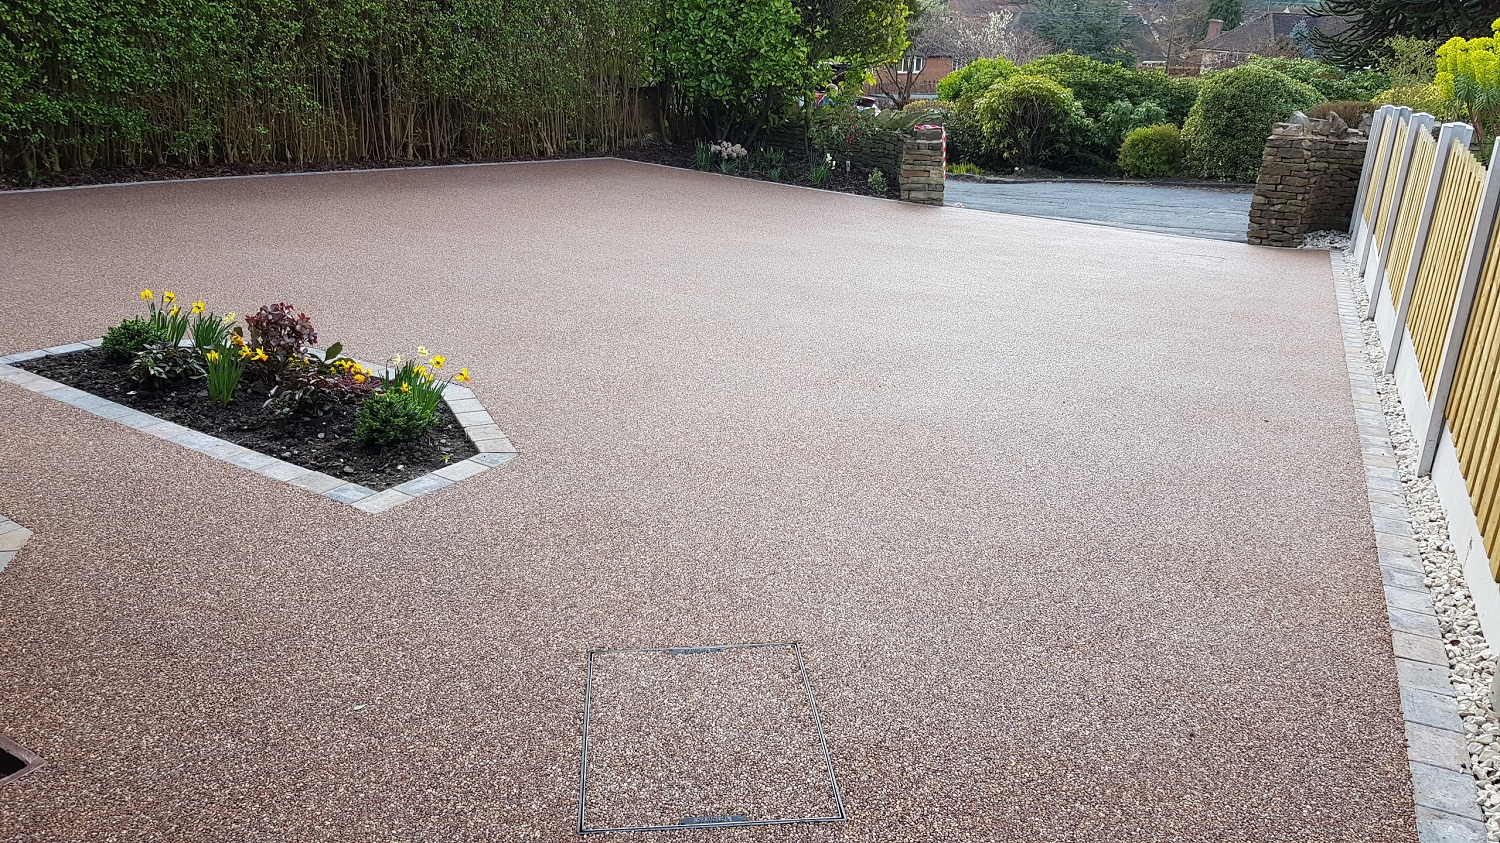 R17 - Chilli Chocolate Mix (2)  Resin Bound Driveway Surfacing at Brookside  in Chesterfield with Bl